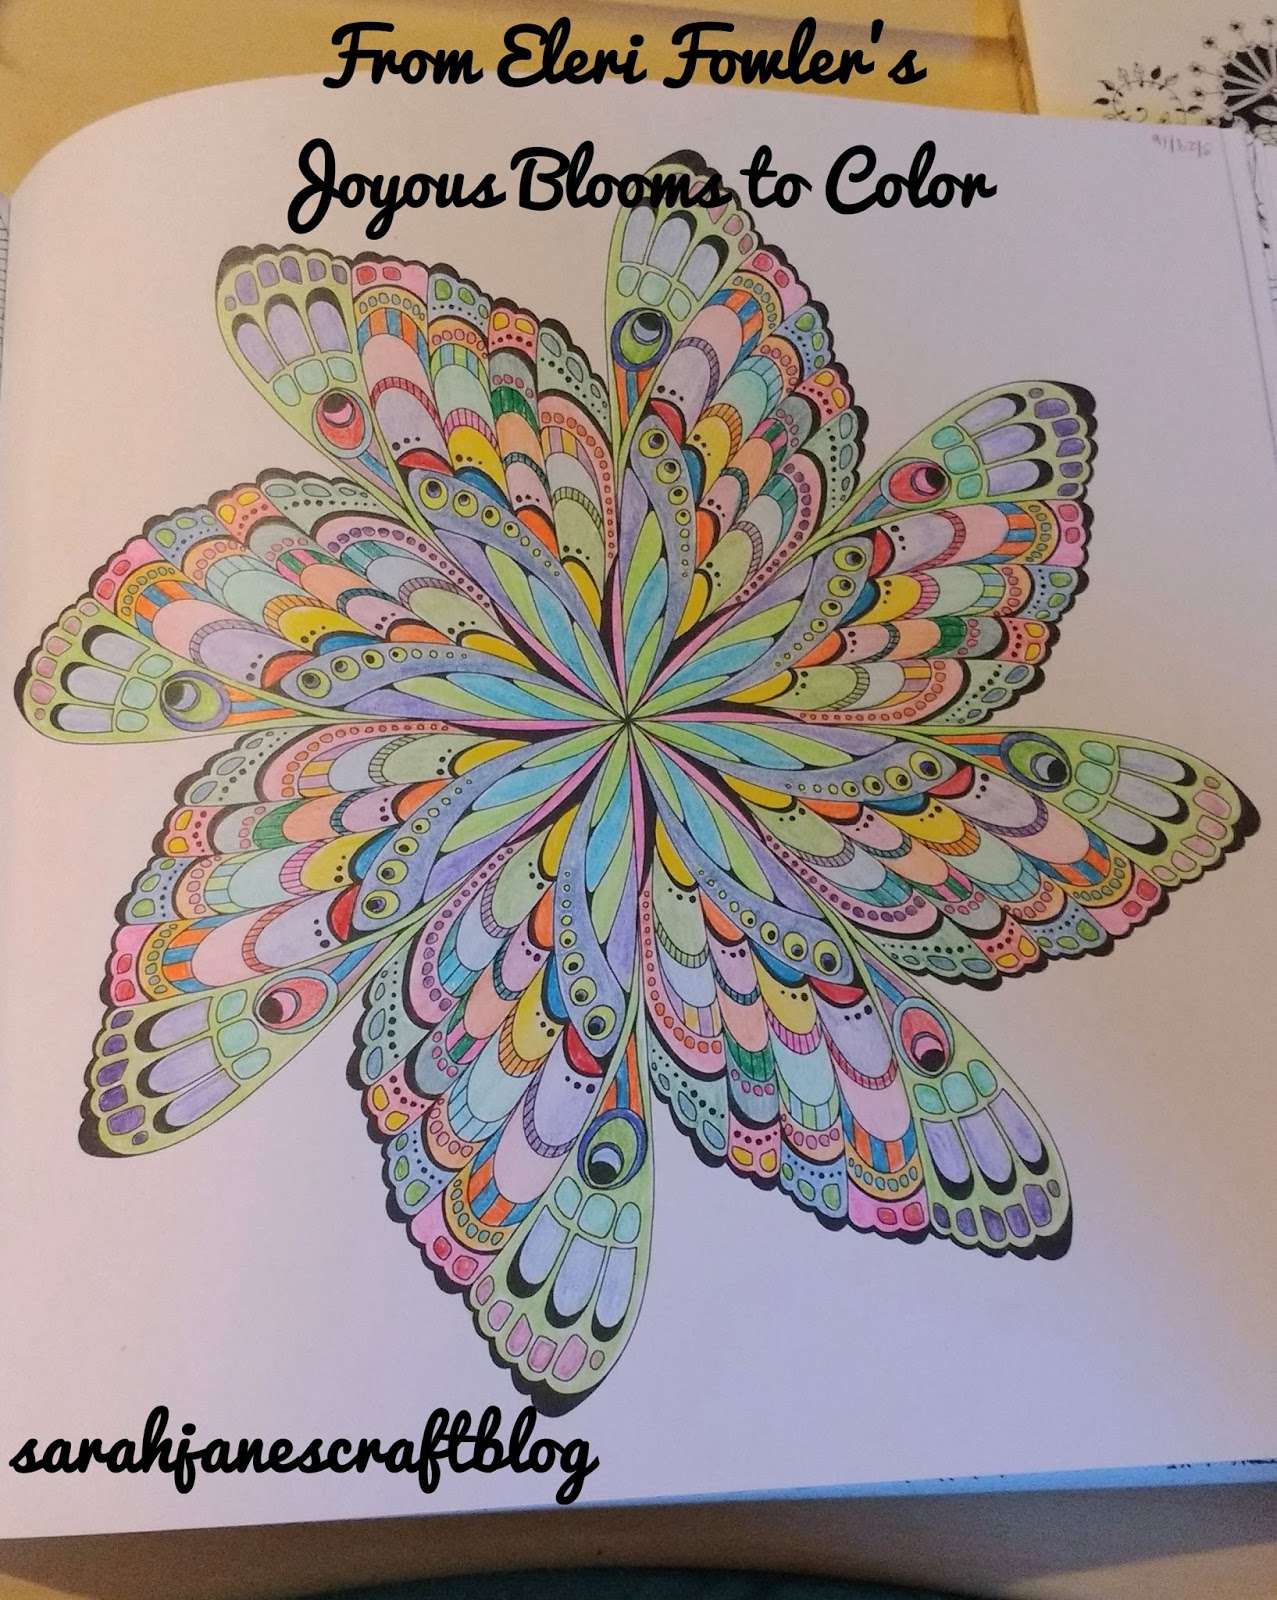 The secret garden coloring book barnes and noble - As For Coloring Books I Have Flipped Through Dozens Of Them At Barnes And Noble And Walmart They Have A Surprisingly Large Collection Of Them In The Book